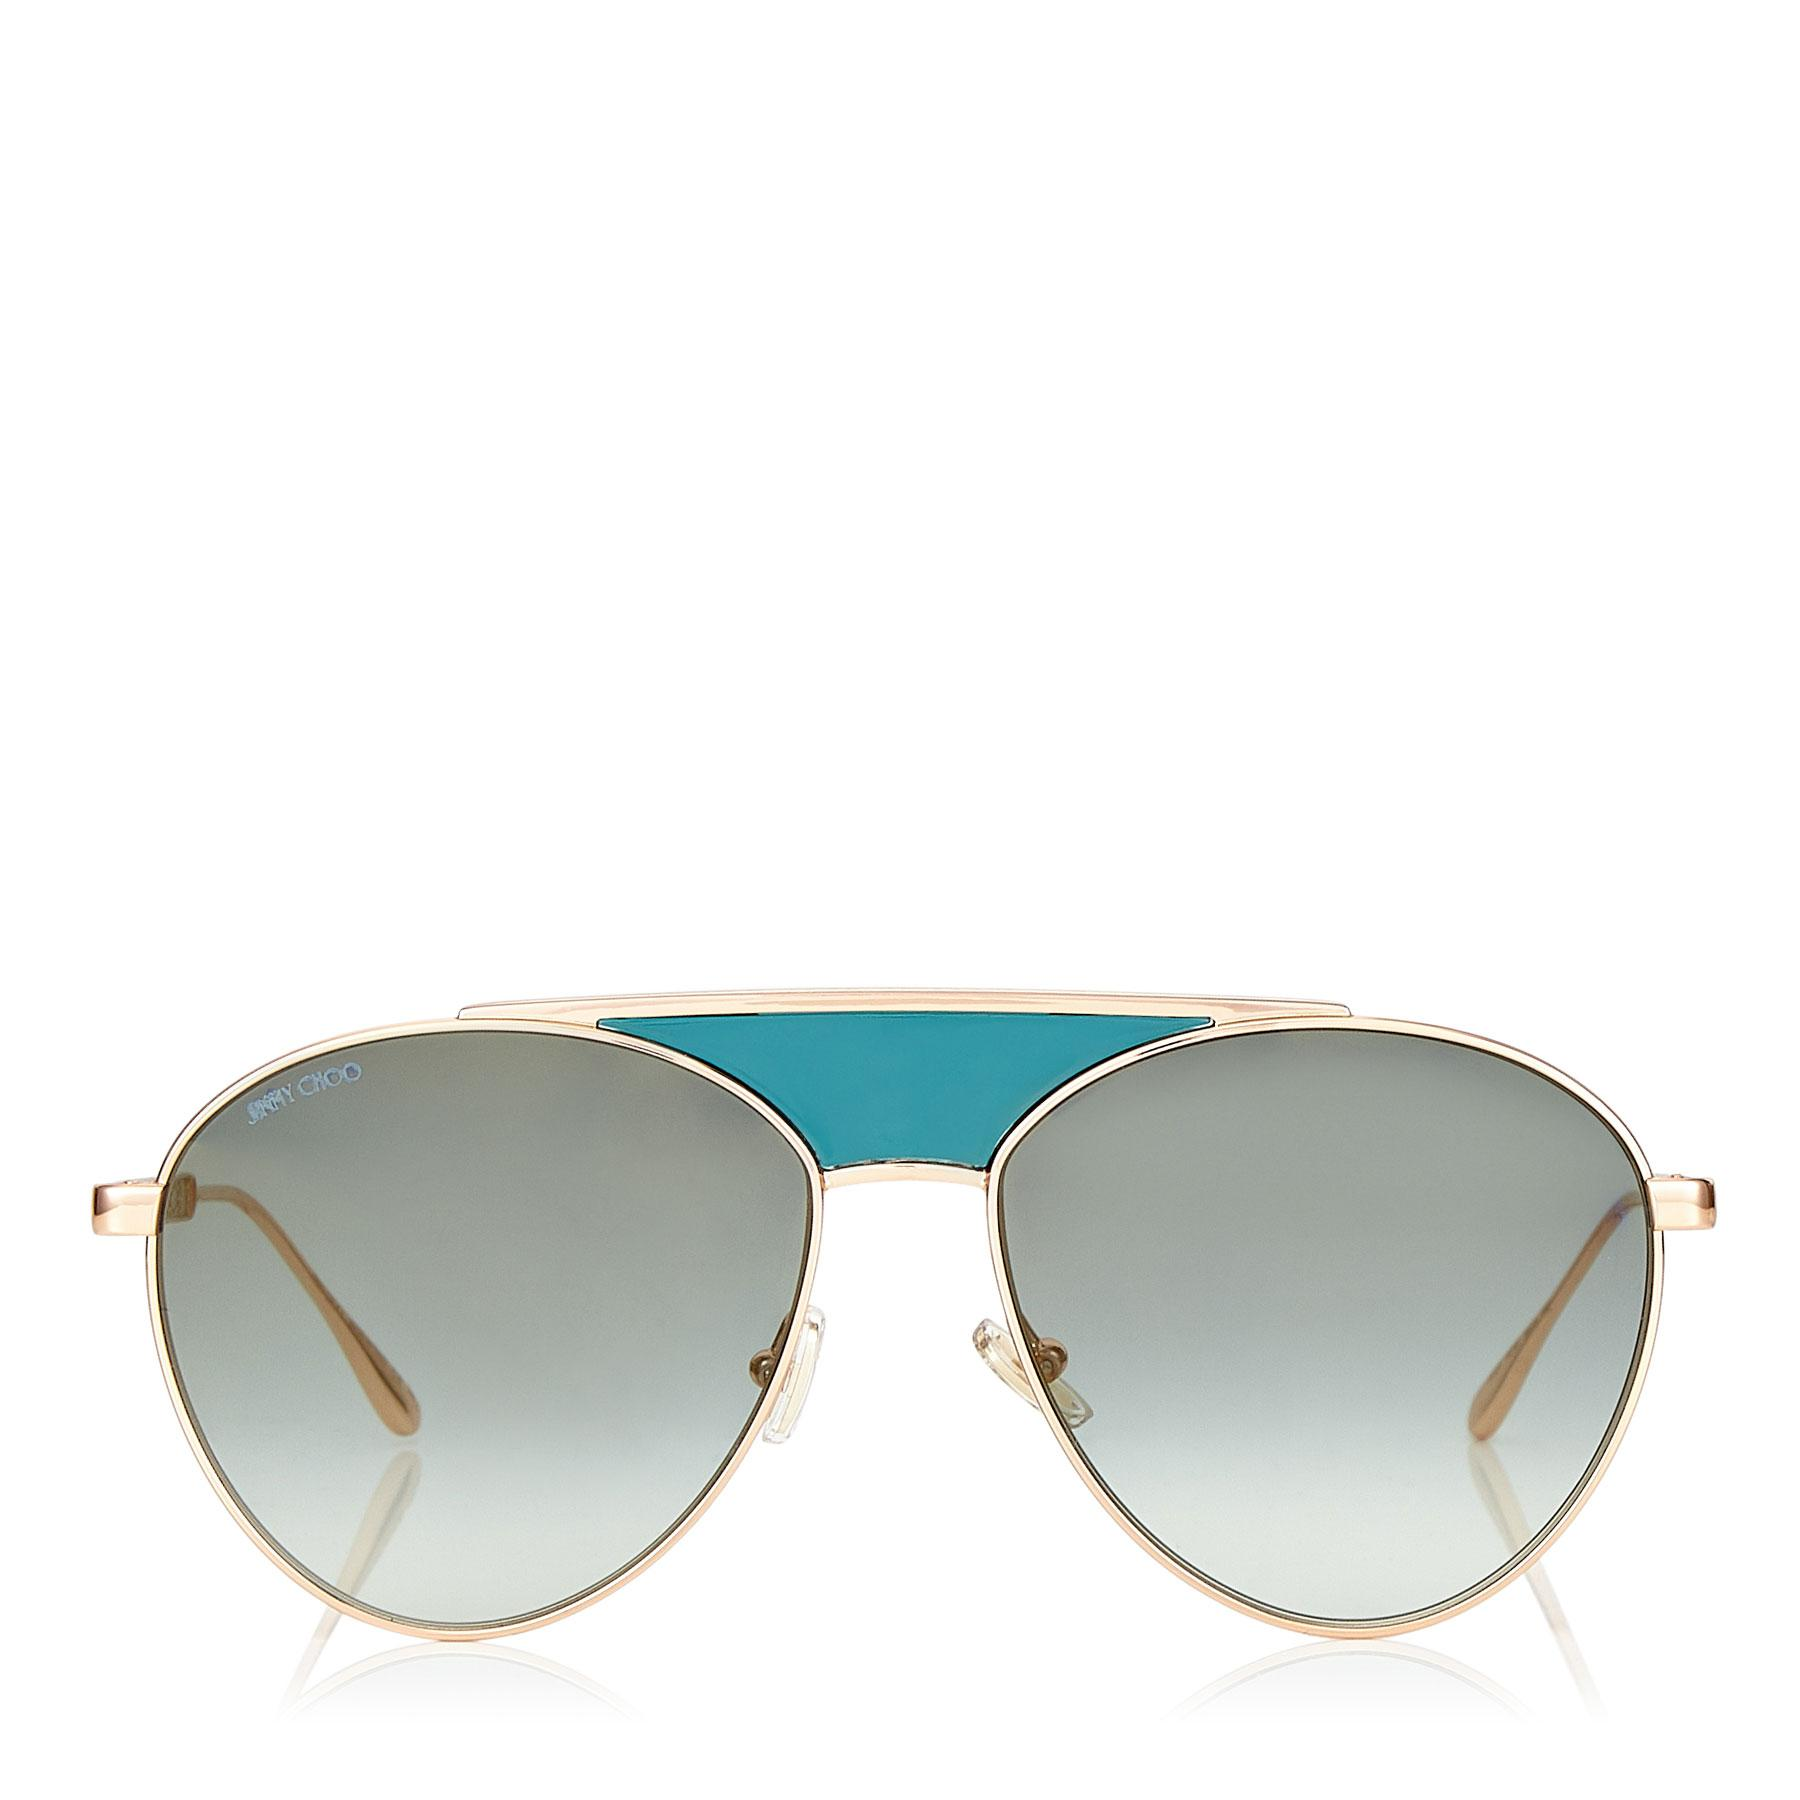 6c38c94b80e2 Jimmy Choo. Women s Ave Gold And Green Metal Aviator Sunglasses With Enamel  Detailing ...